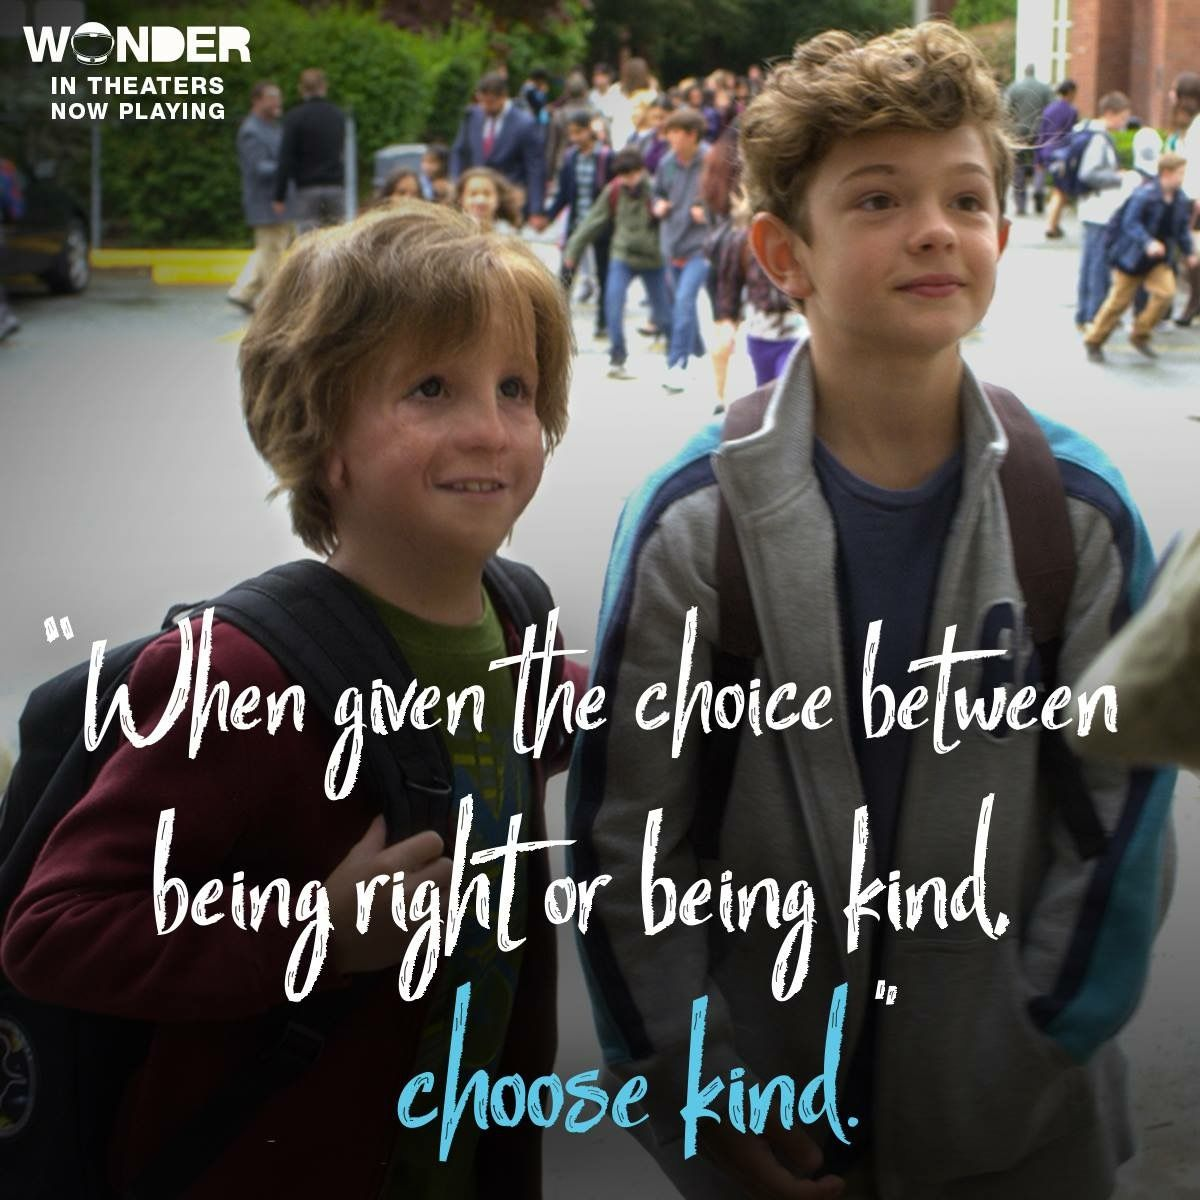 Choosing Kind I Loveeeeee Wonder Always Choose Kindness In